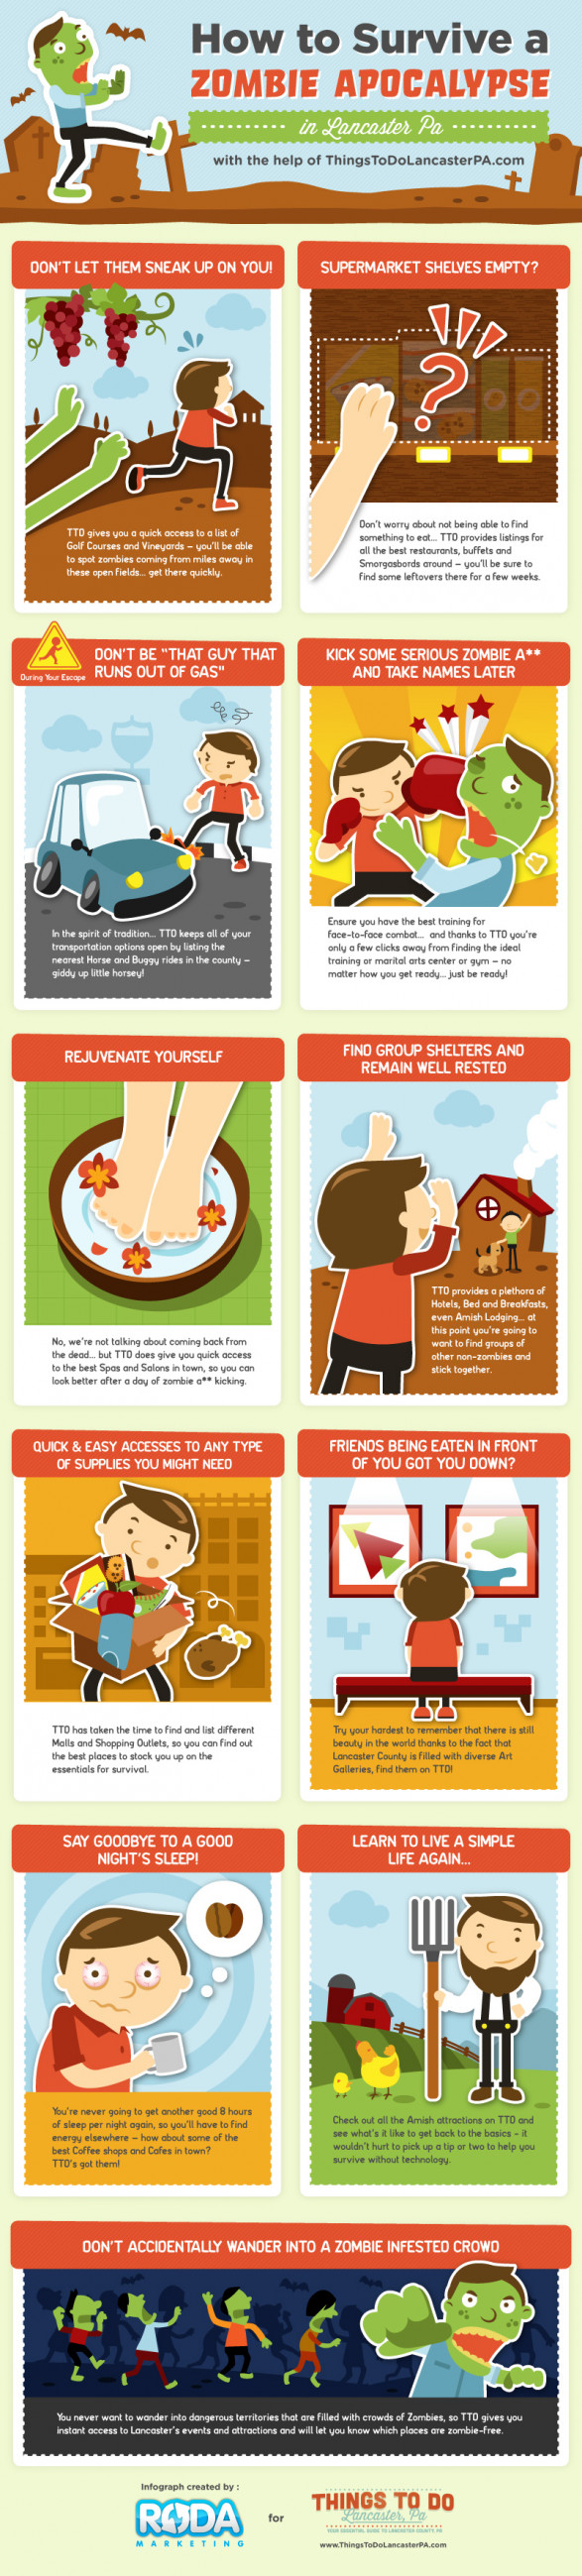 Zombie Apocalypse Survival Tips [INFOGRAPHIC]